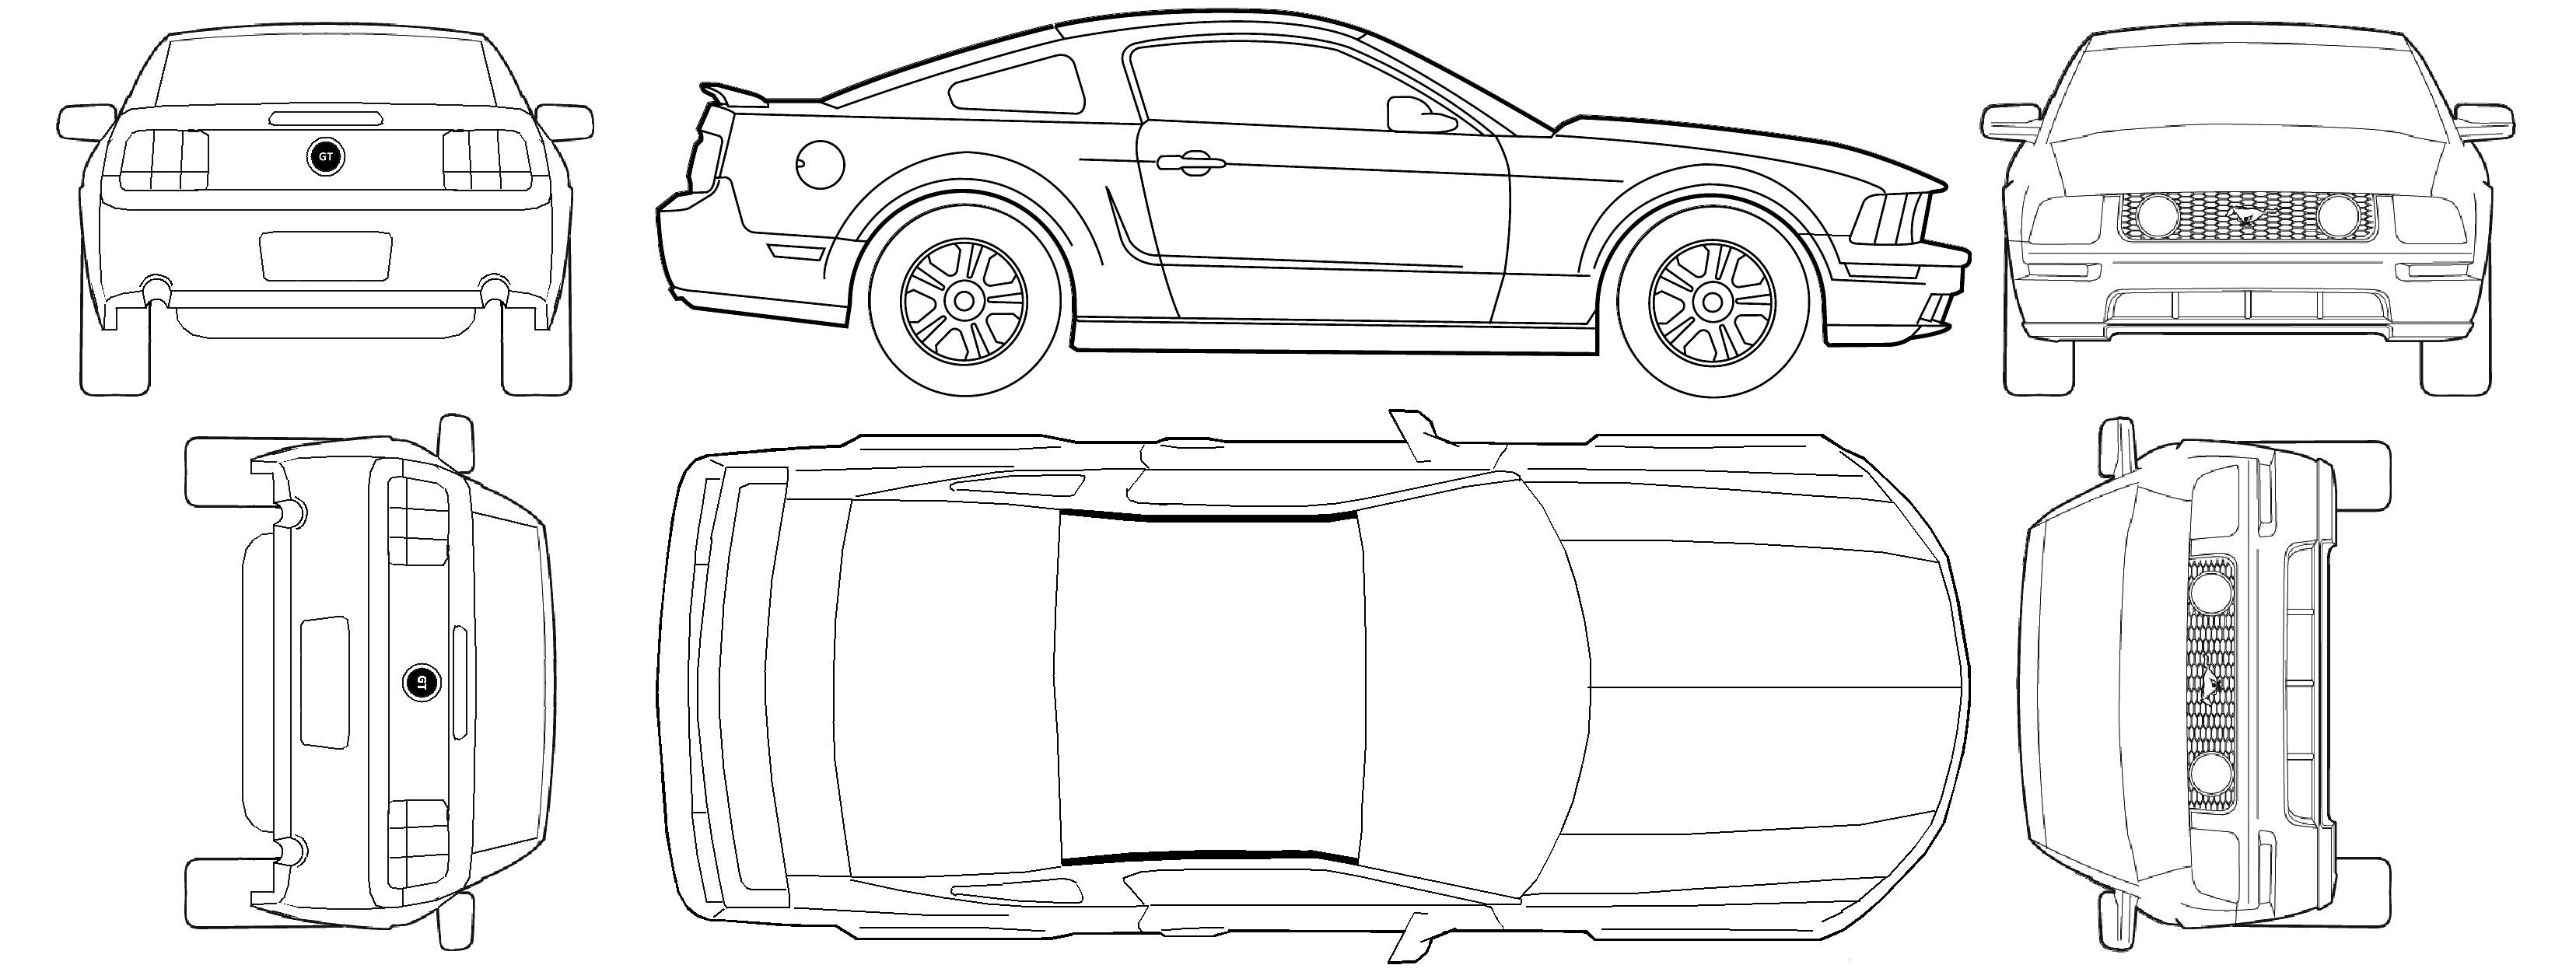 2000 mustang clipart graphic freeuse stock Free Car Blueprint ford mustang gt v8 2005 | Harley | Ford mustang ... graphic freeuse stock